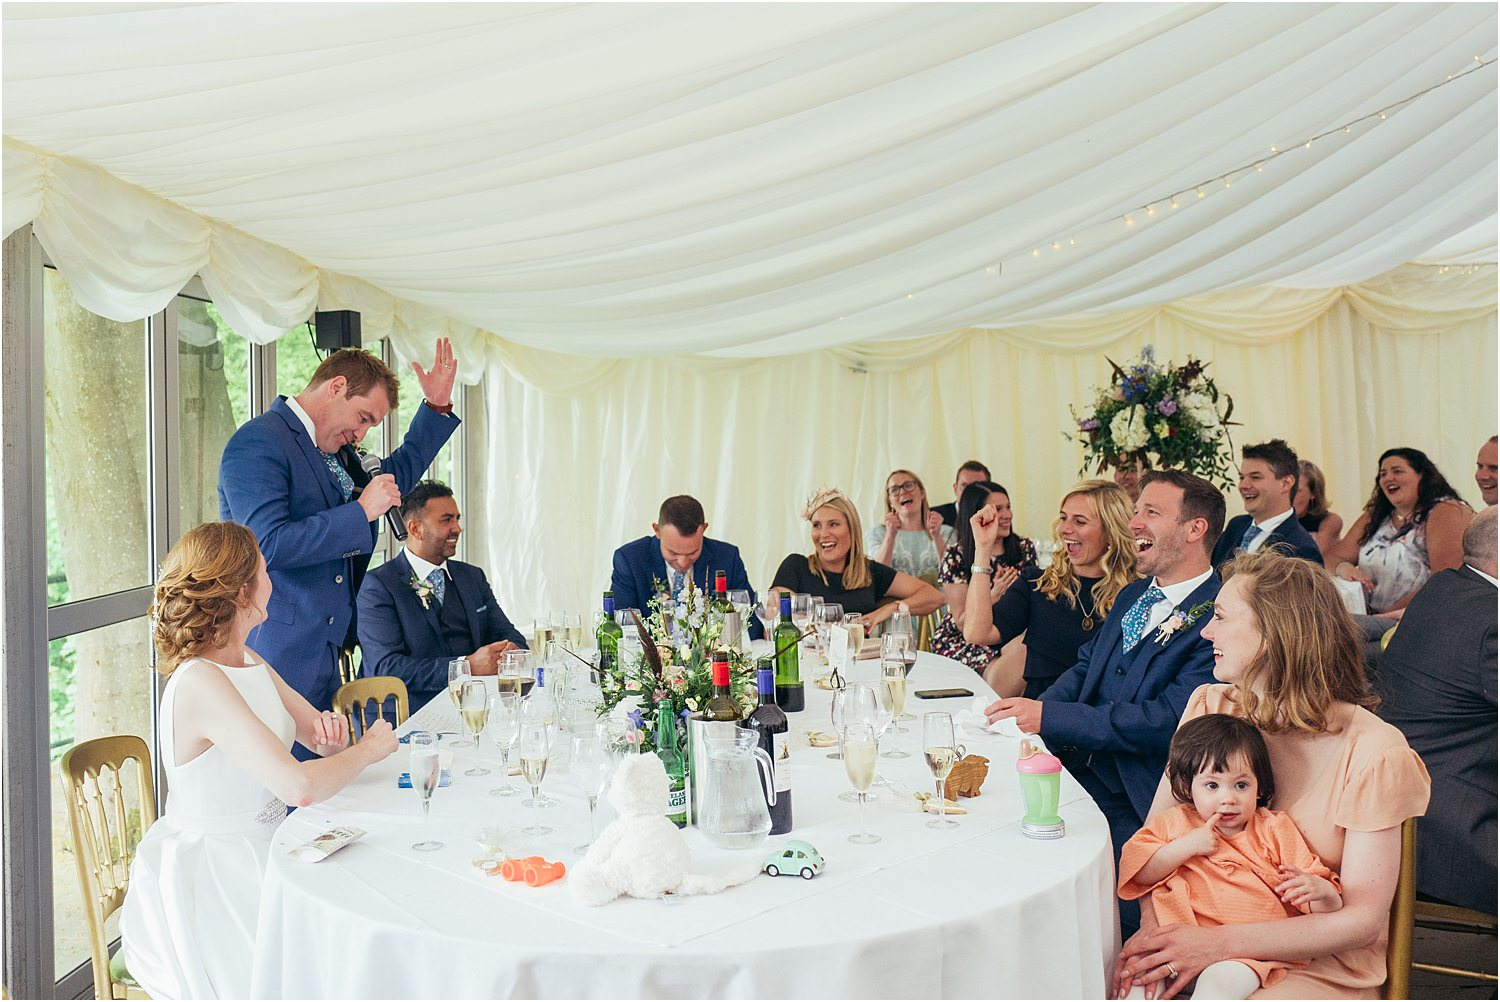 Bride groom's speech at his wedding reception at the Inn at Whitewell in Lancashire